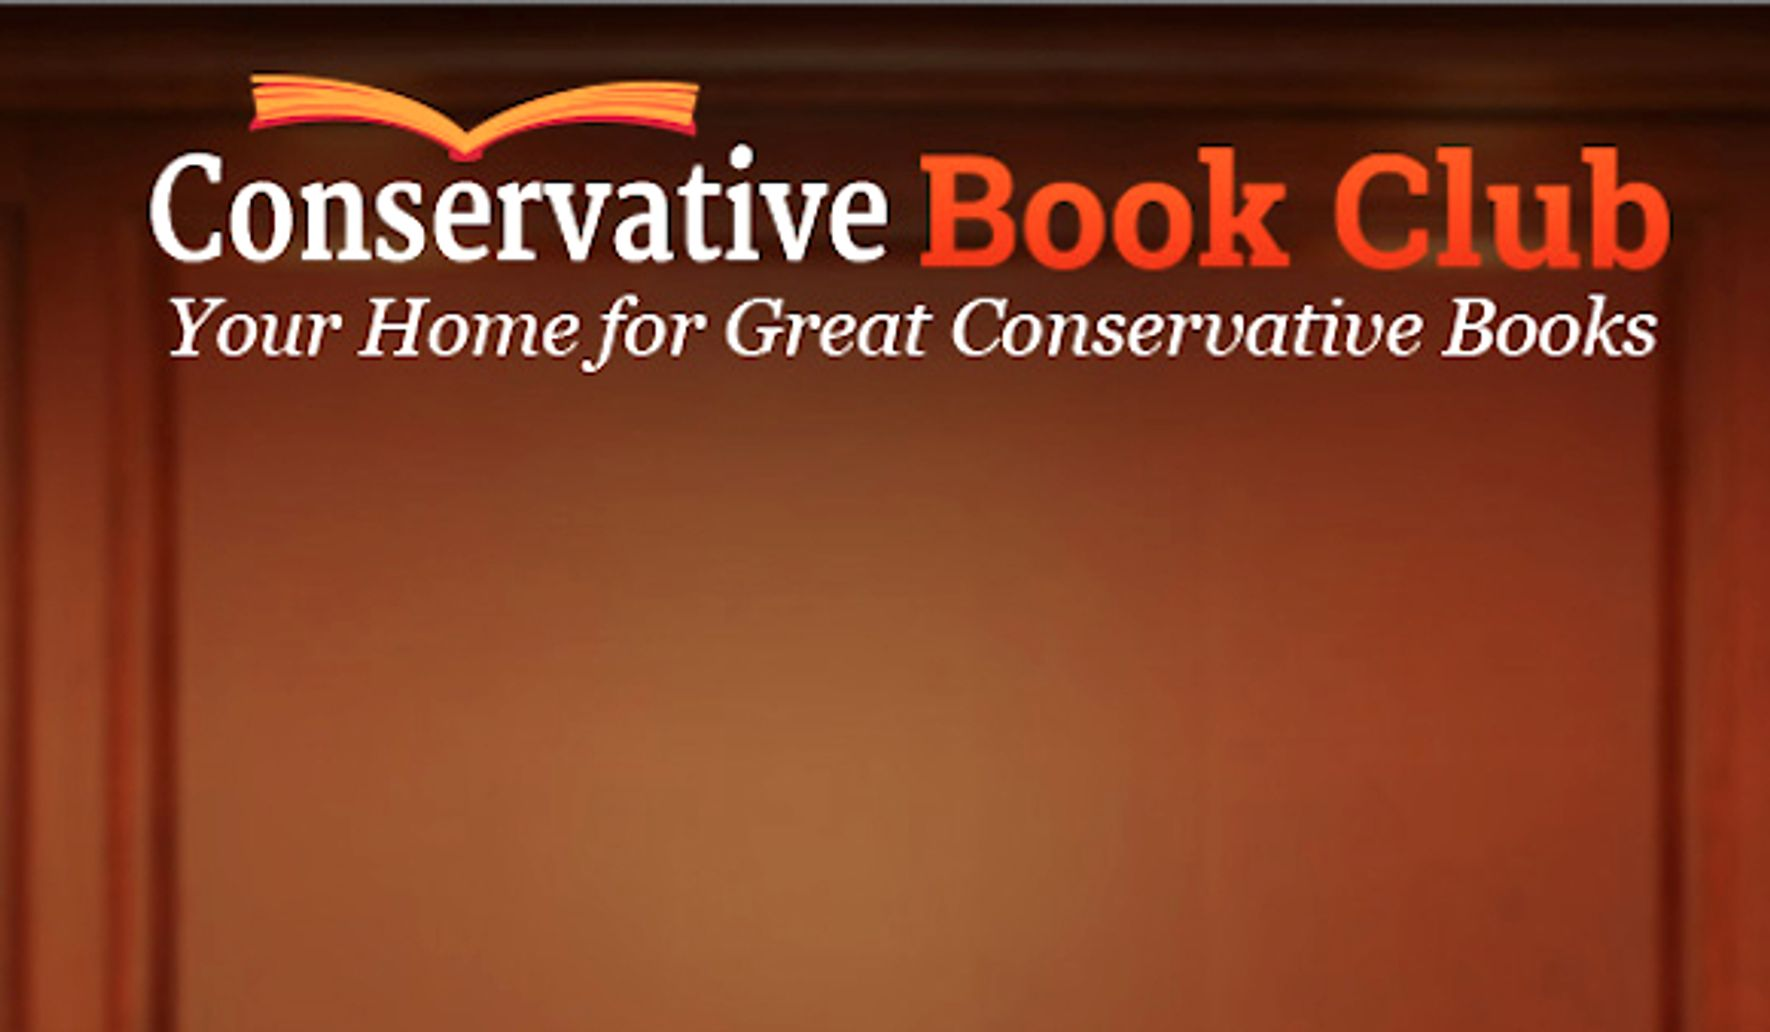 Conservative Book Club site steers readers to the right